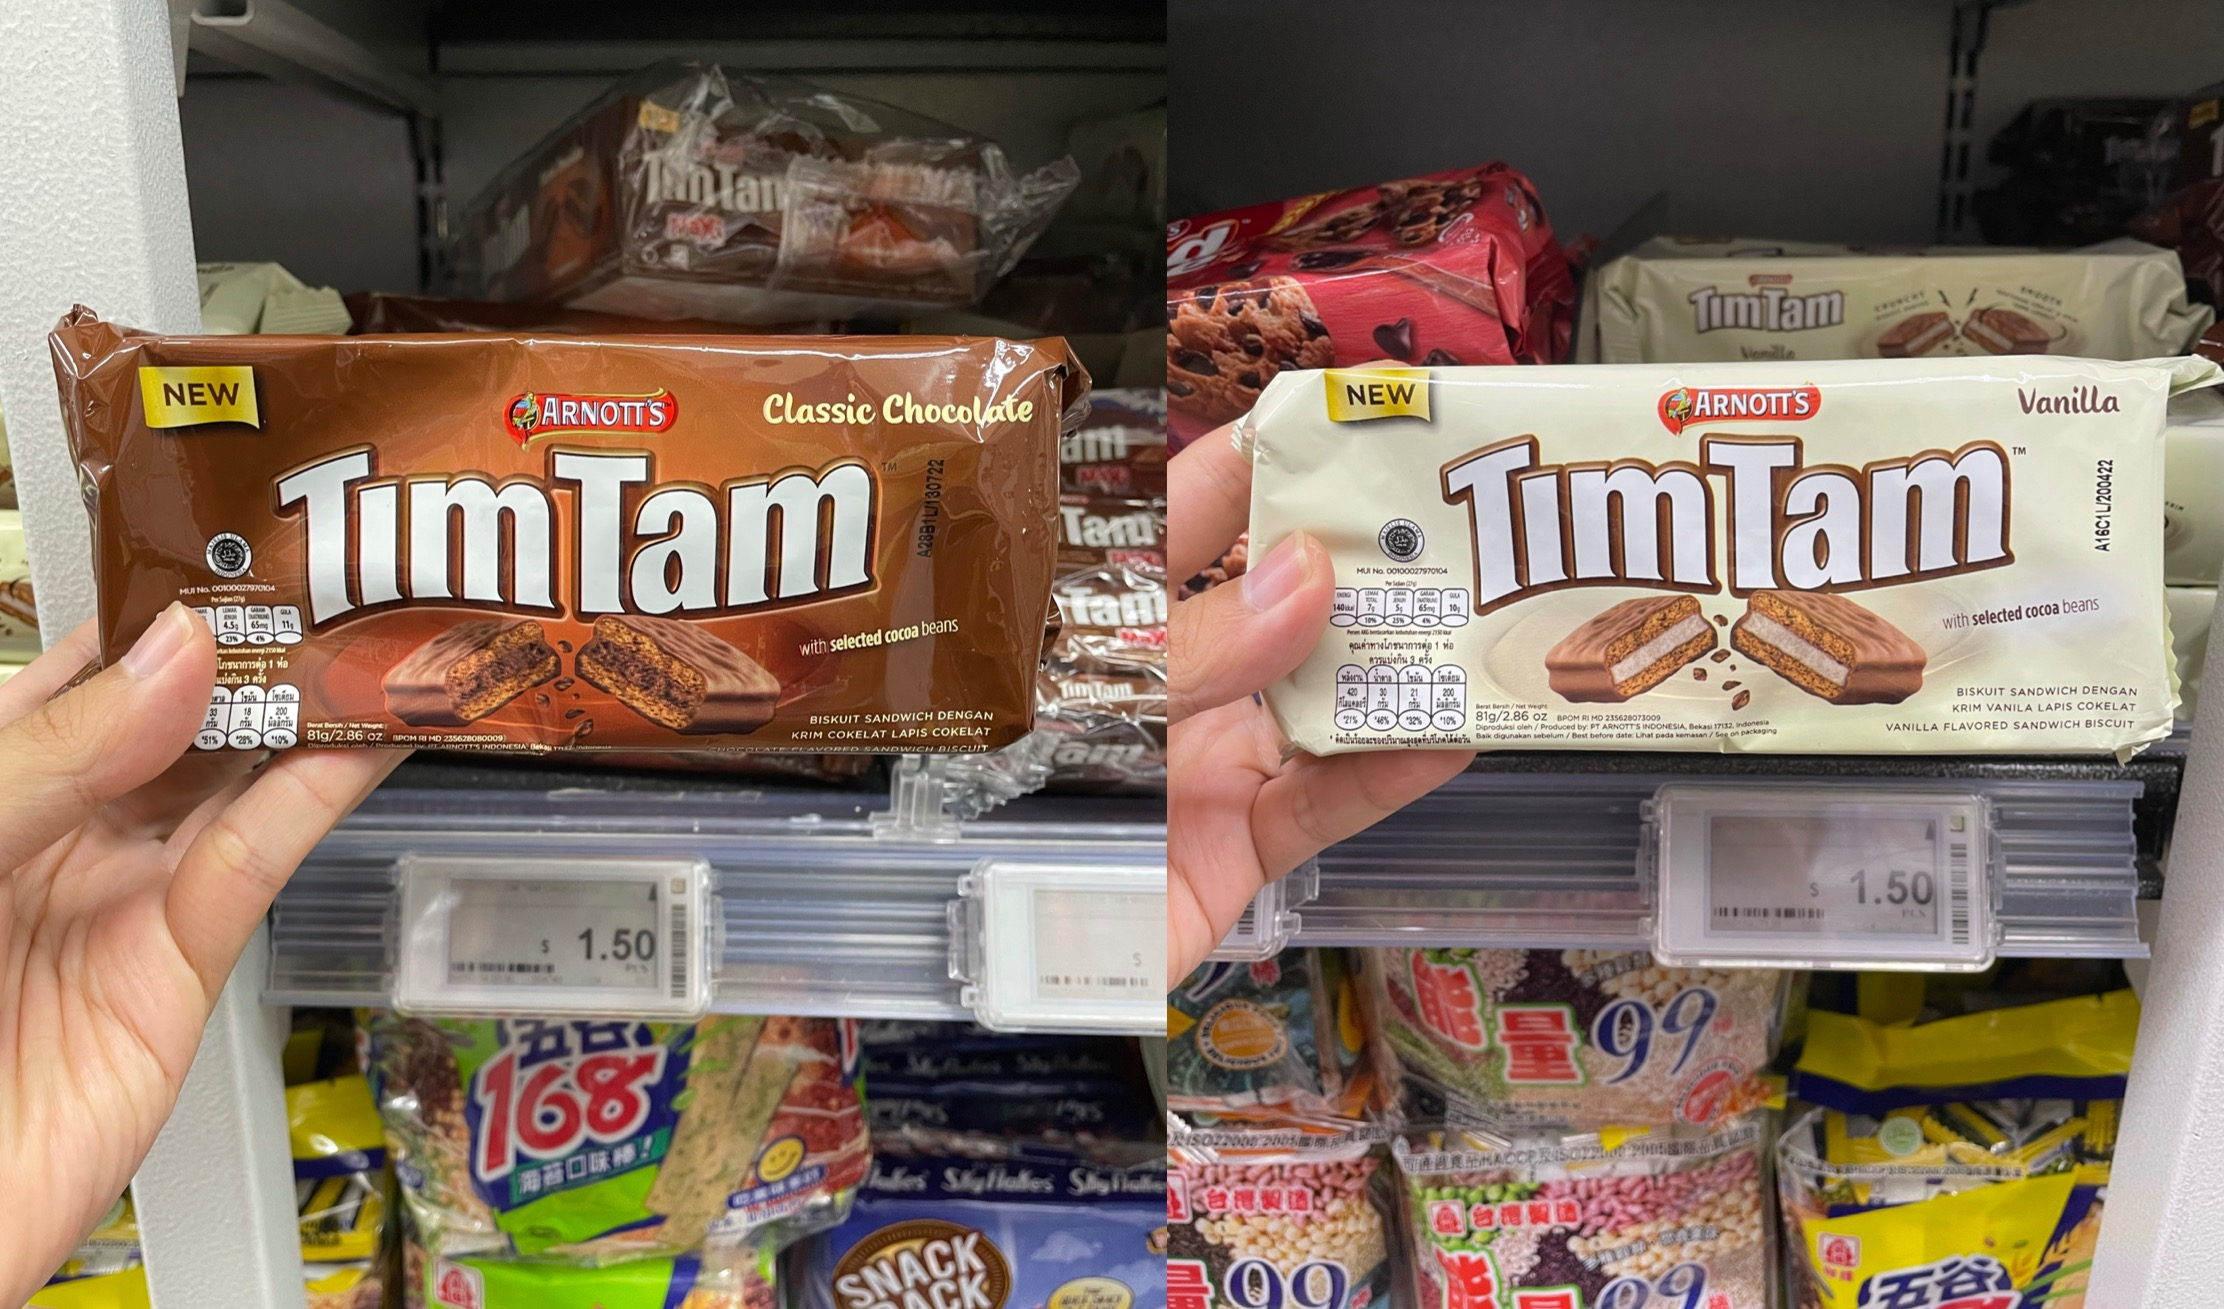 $1.50 Tim Tam Biscuits found at Sheng Siong supermarkets